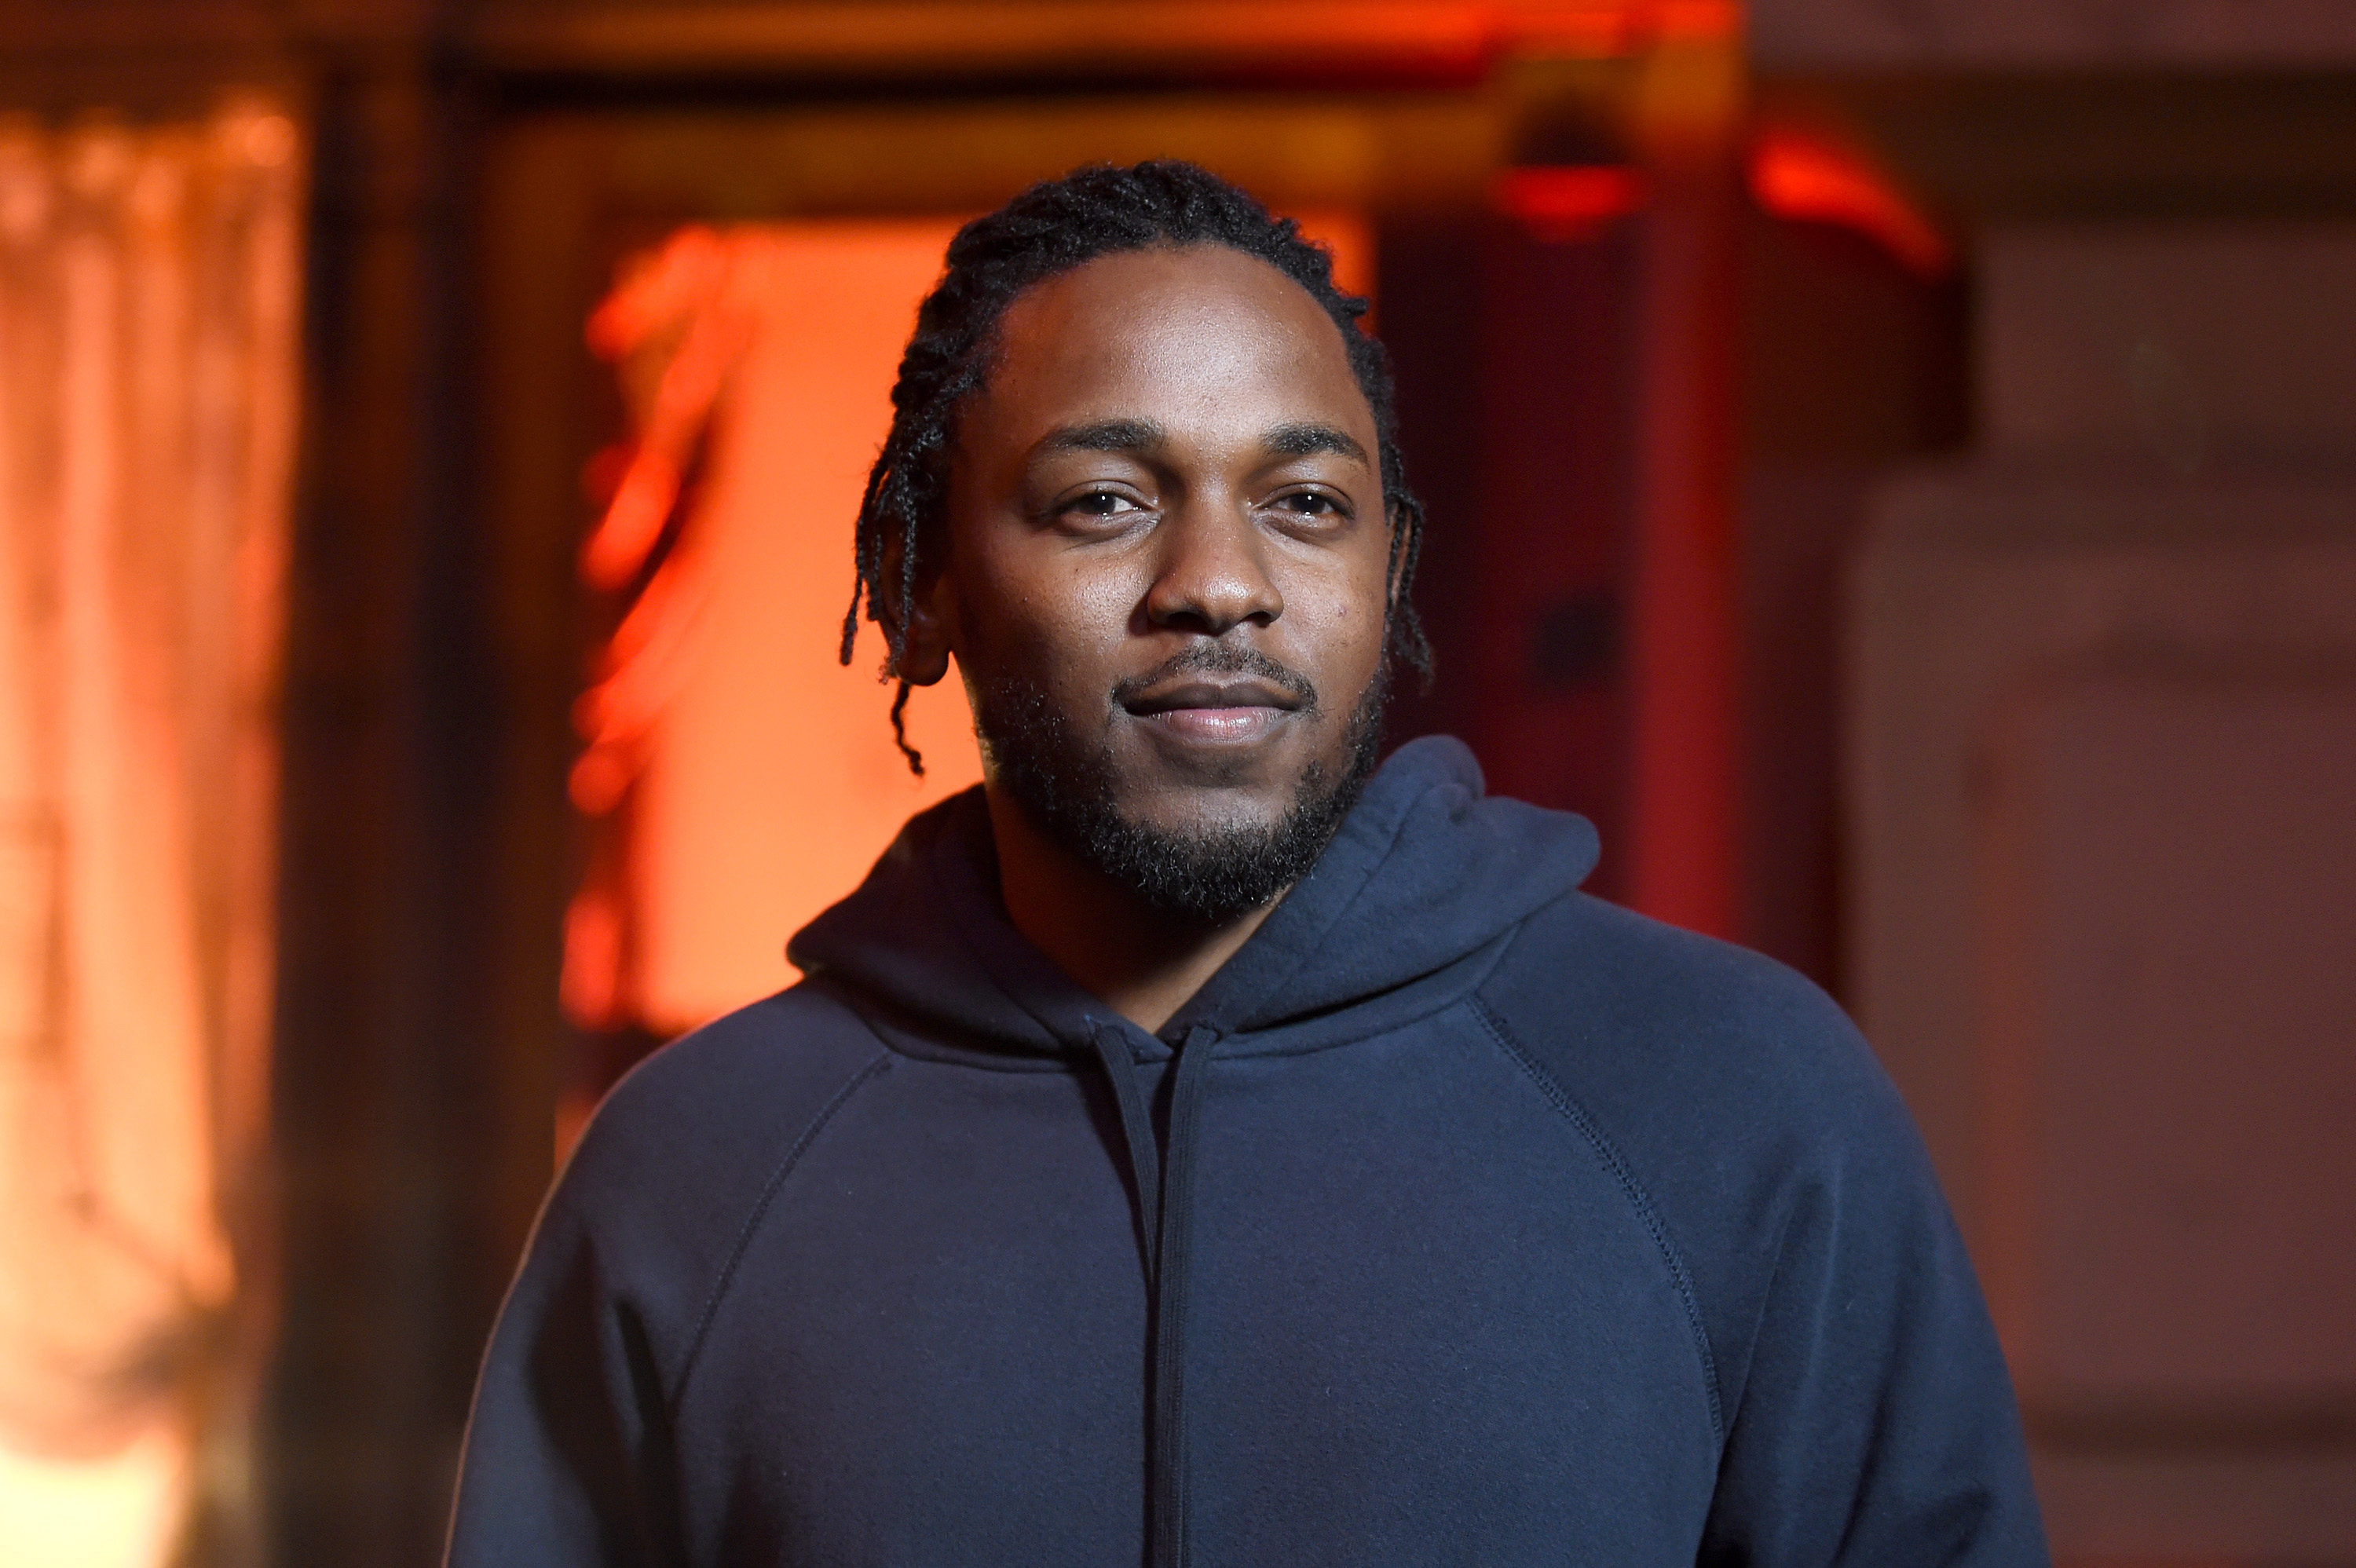 Kendrick Lamar has been sued for 'sampling' a Bill Withers song